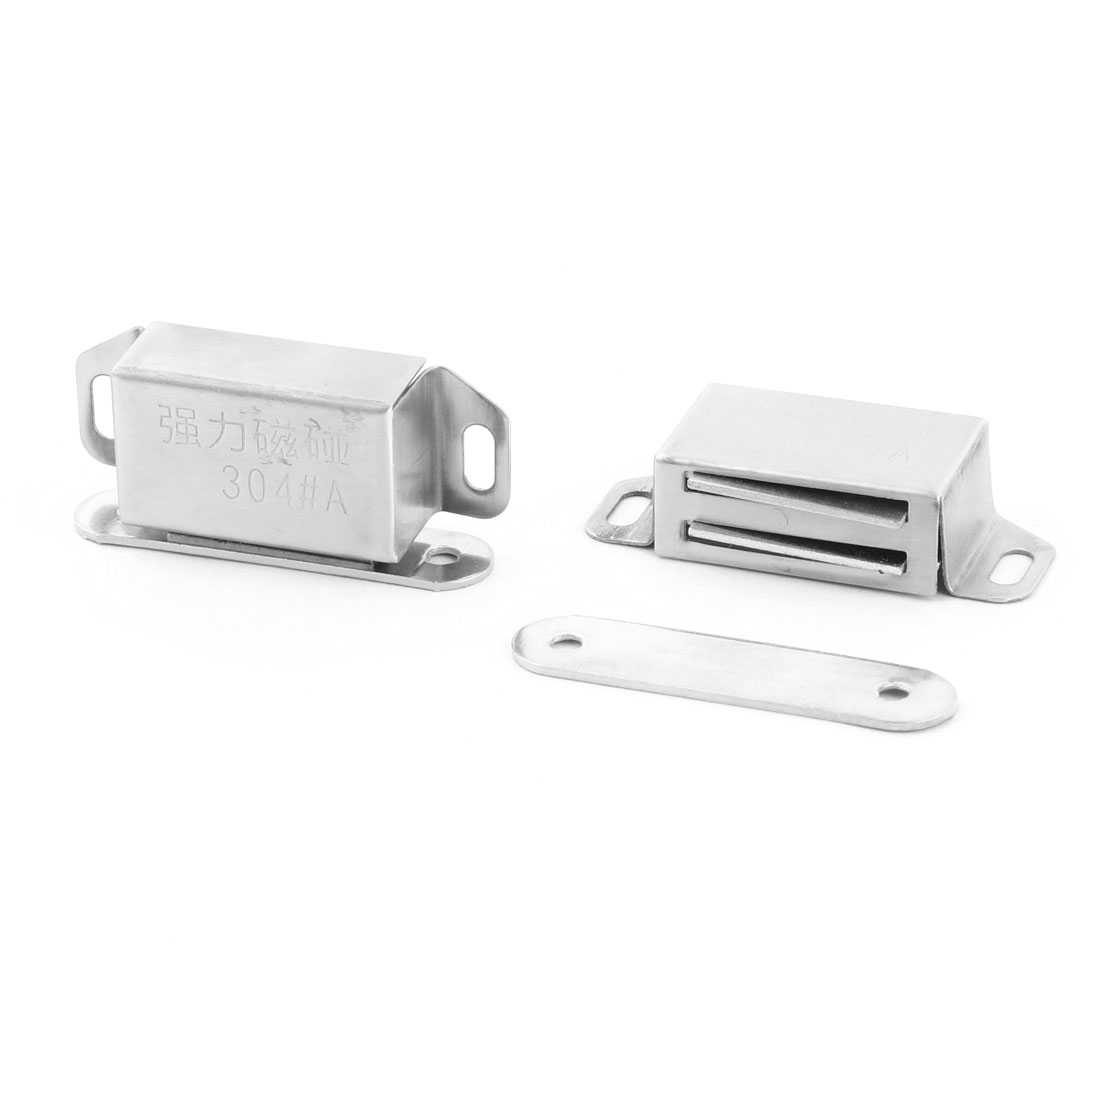 Home Stainless Steel Door Wardrobe Closet Stopper Holder Magnetic Catch Latch 2pcs